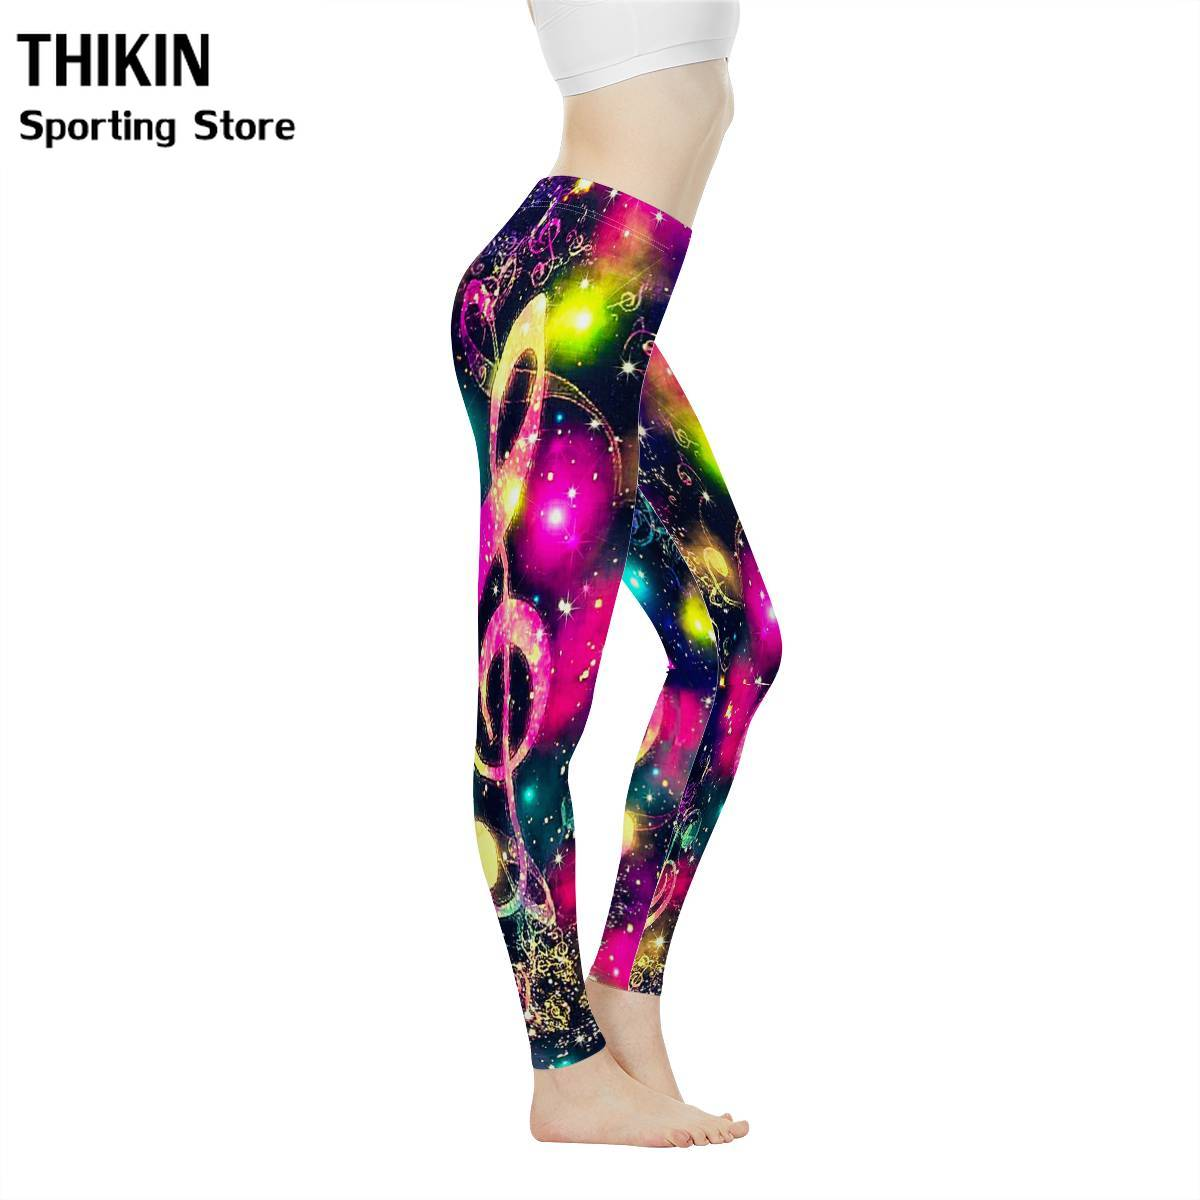 THIKIN Fashion Pink Music Note Pattern Tight Pants Fitness Leggings for Women Workout Sports Running Ombre Seamless Leggings image